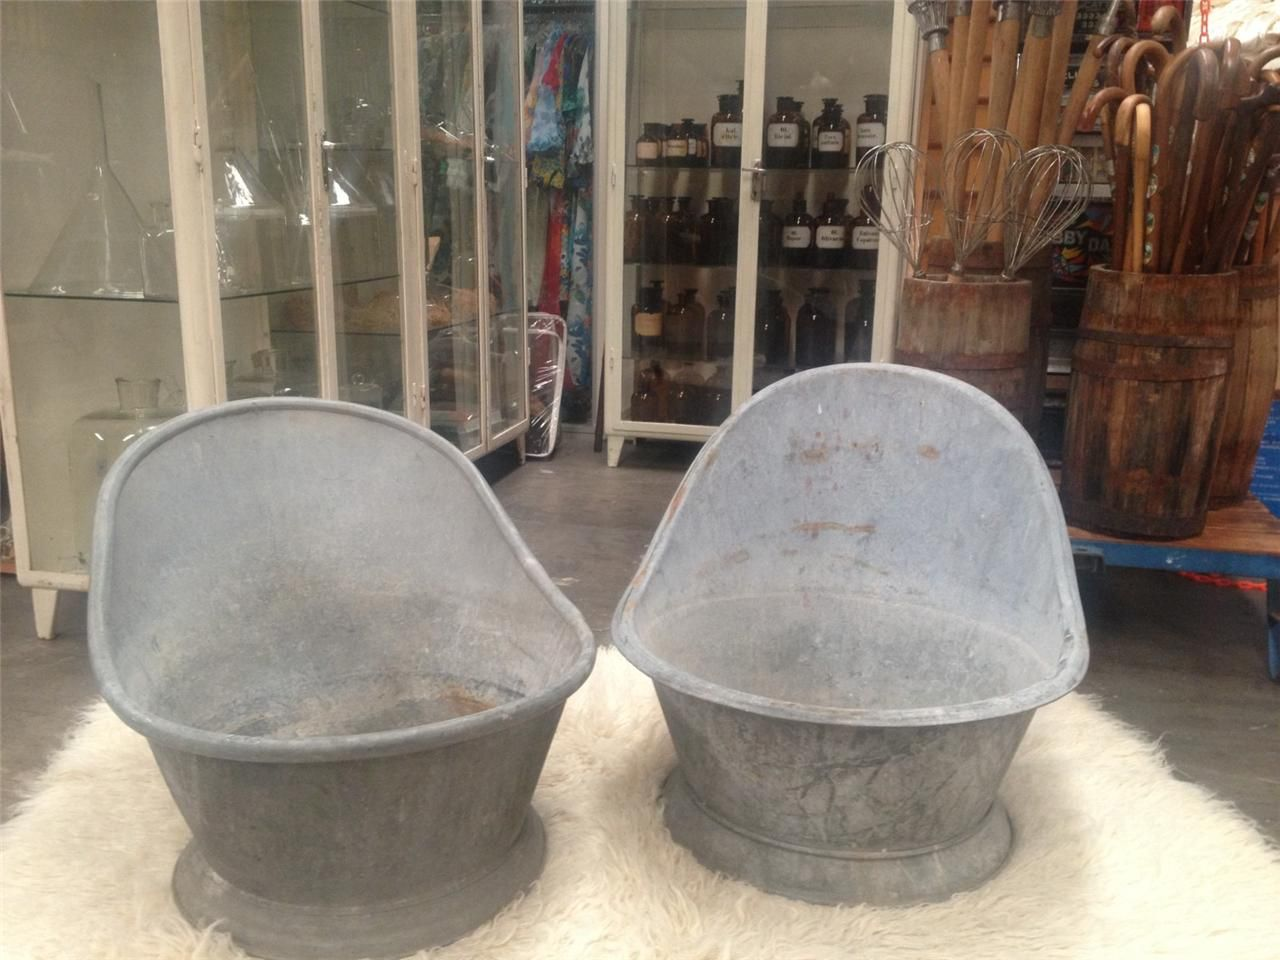 Vintage Industrial Antique French Galvanised Kids Bath Tub